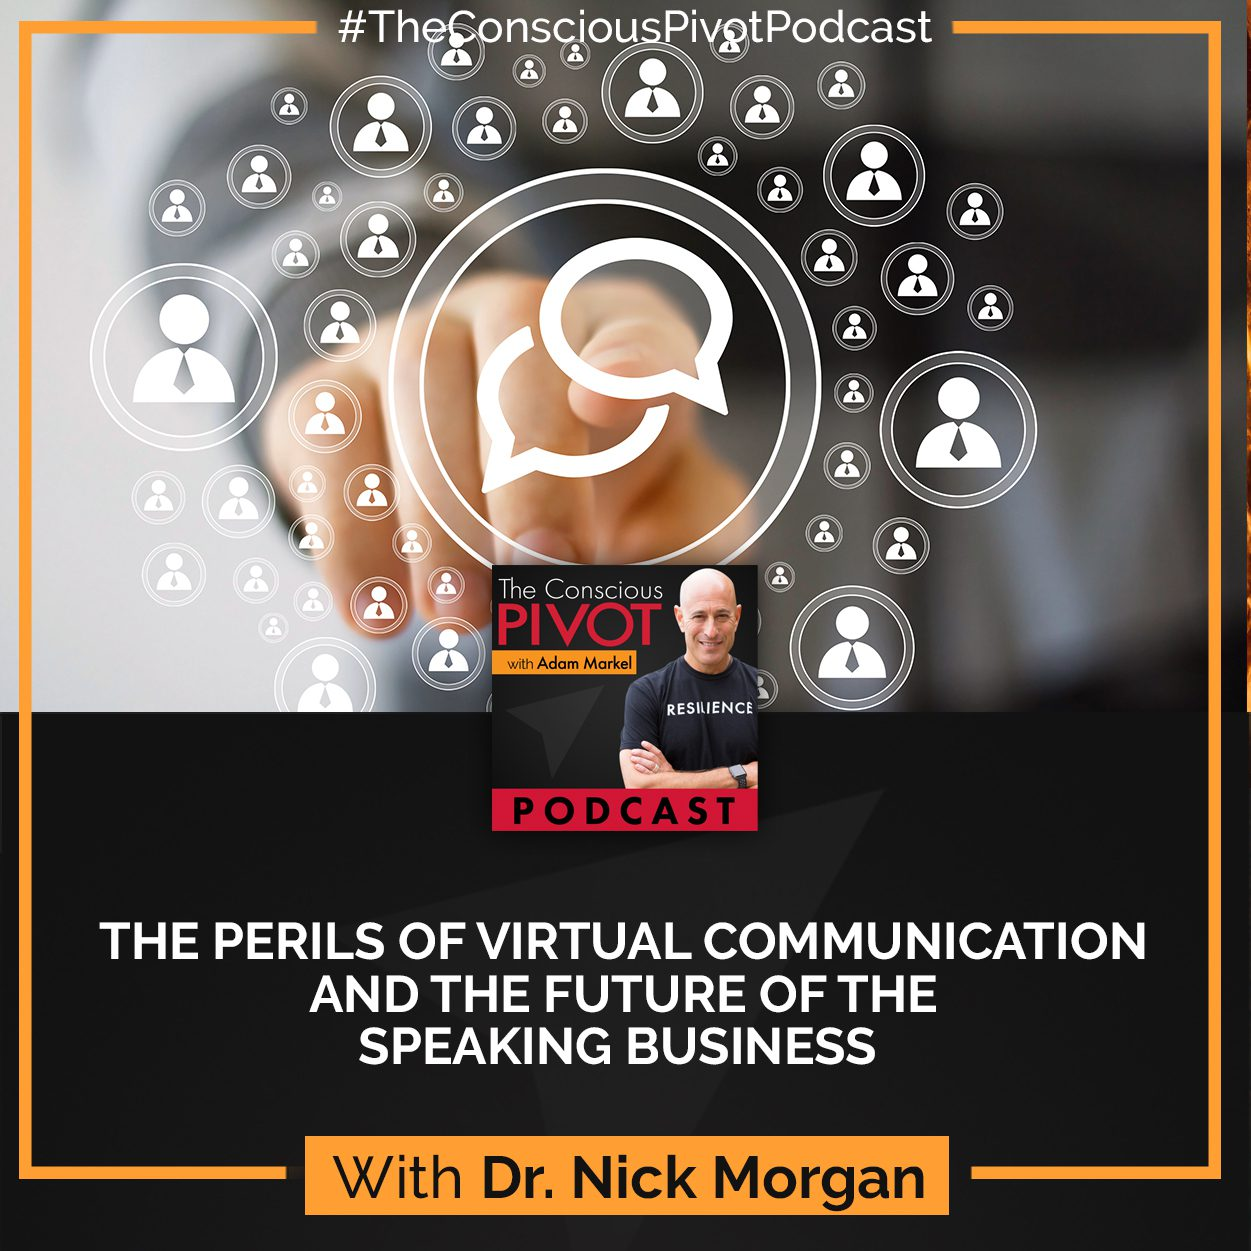 The Perils Of Virtual Communication And The Future Of The Speaking Business With Dr. Nick Morgan